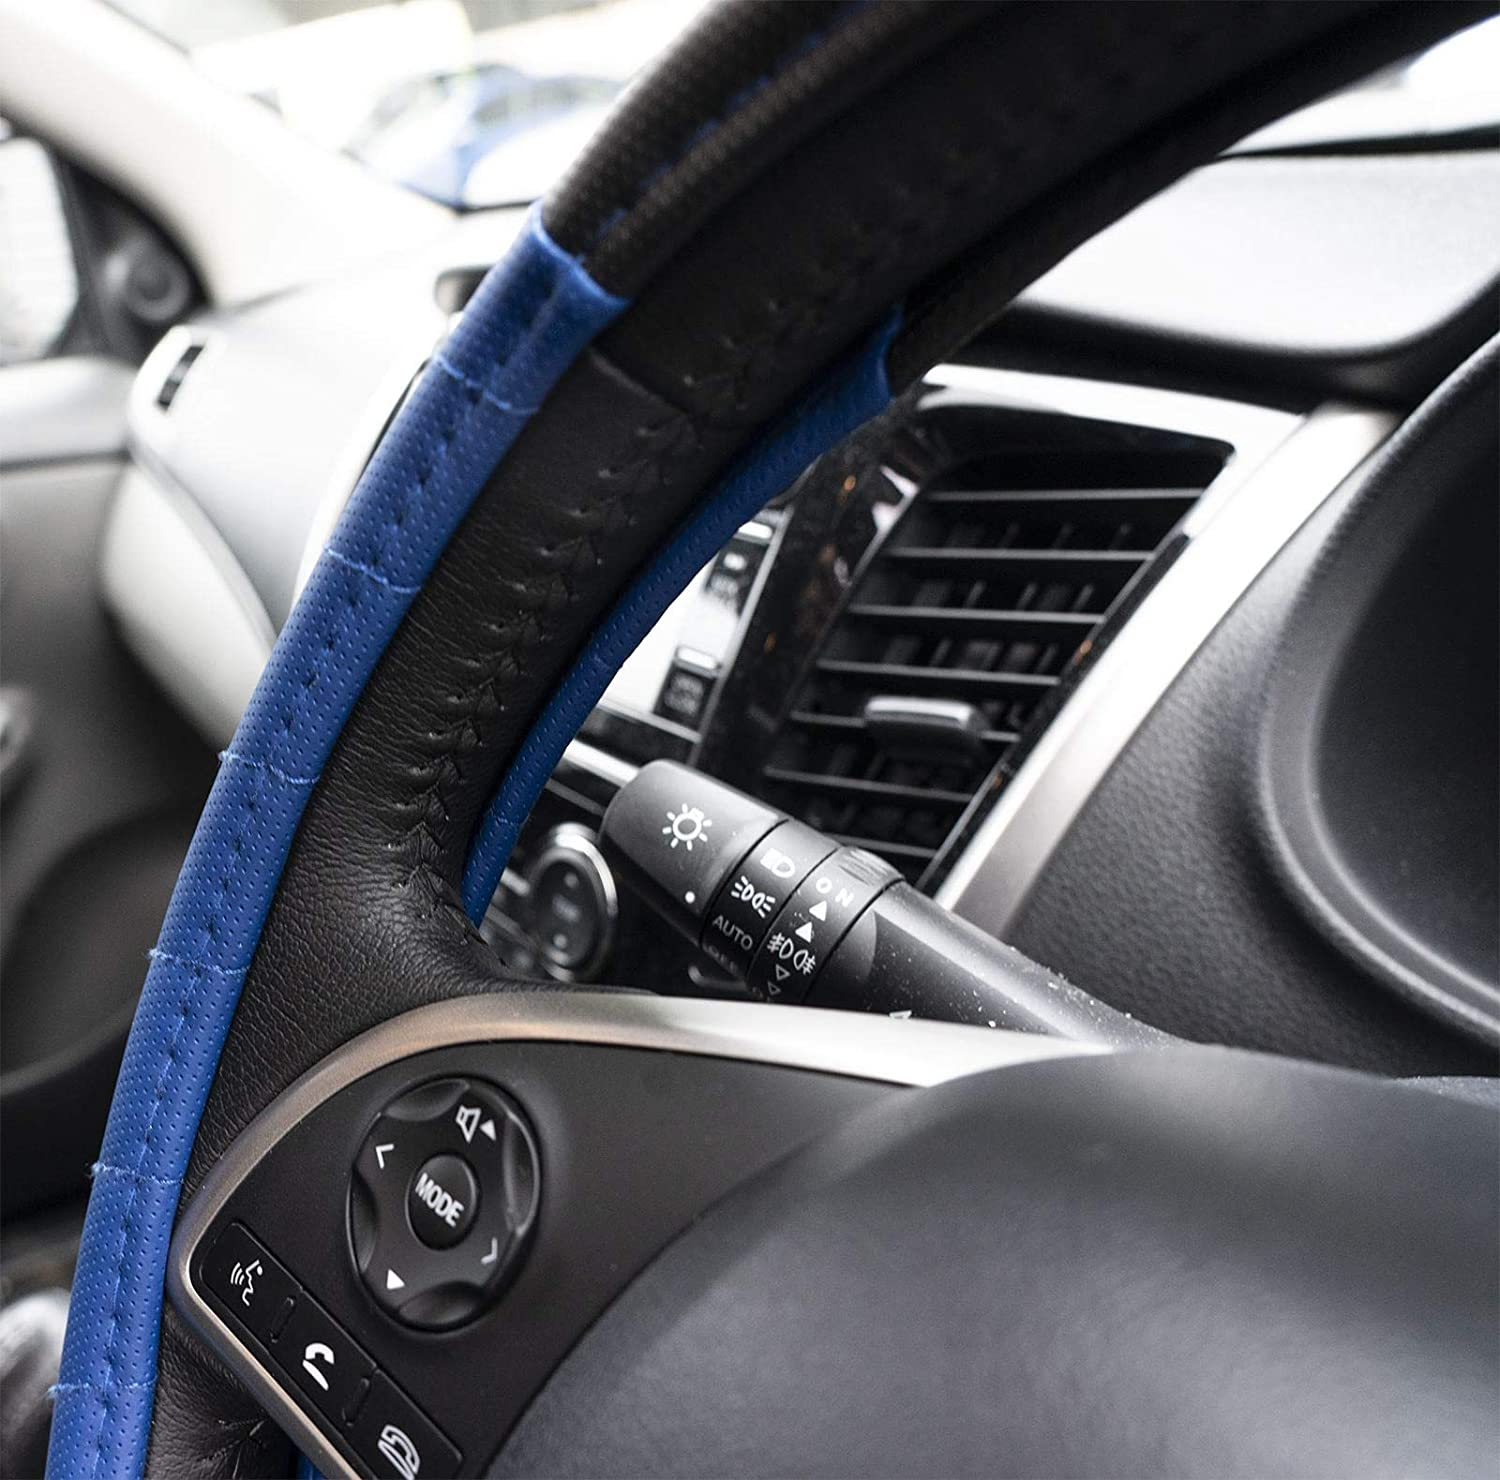 UKB4C Blue Steering Wheel Cover /& 8 Piece Seat Cover Set Washable Airbag Safe Full Protection